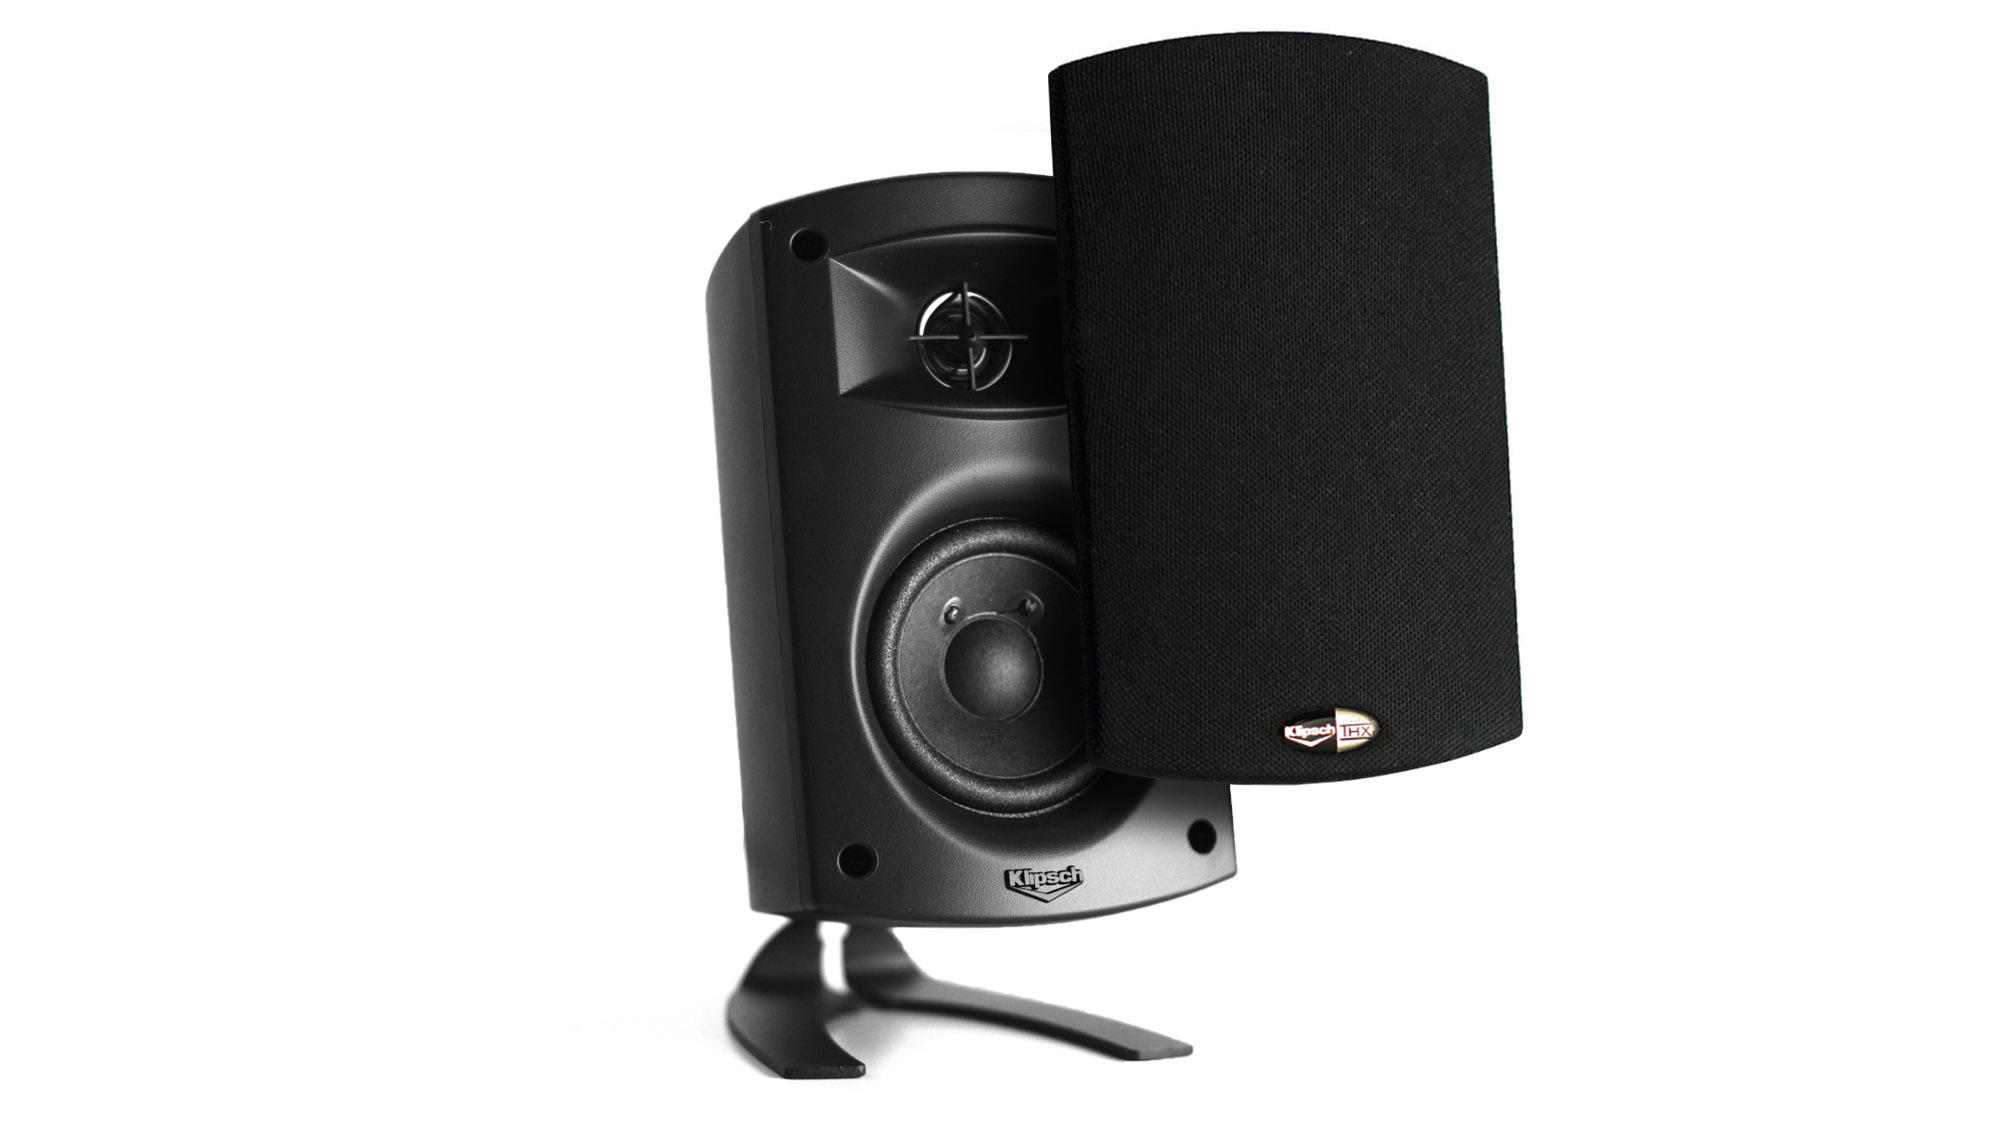 Klipsch Pro Media Monitorlautsprecher